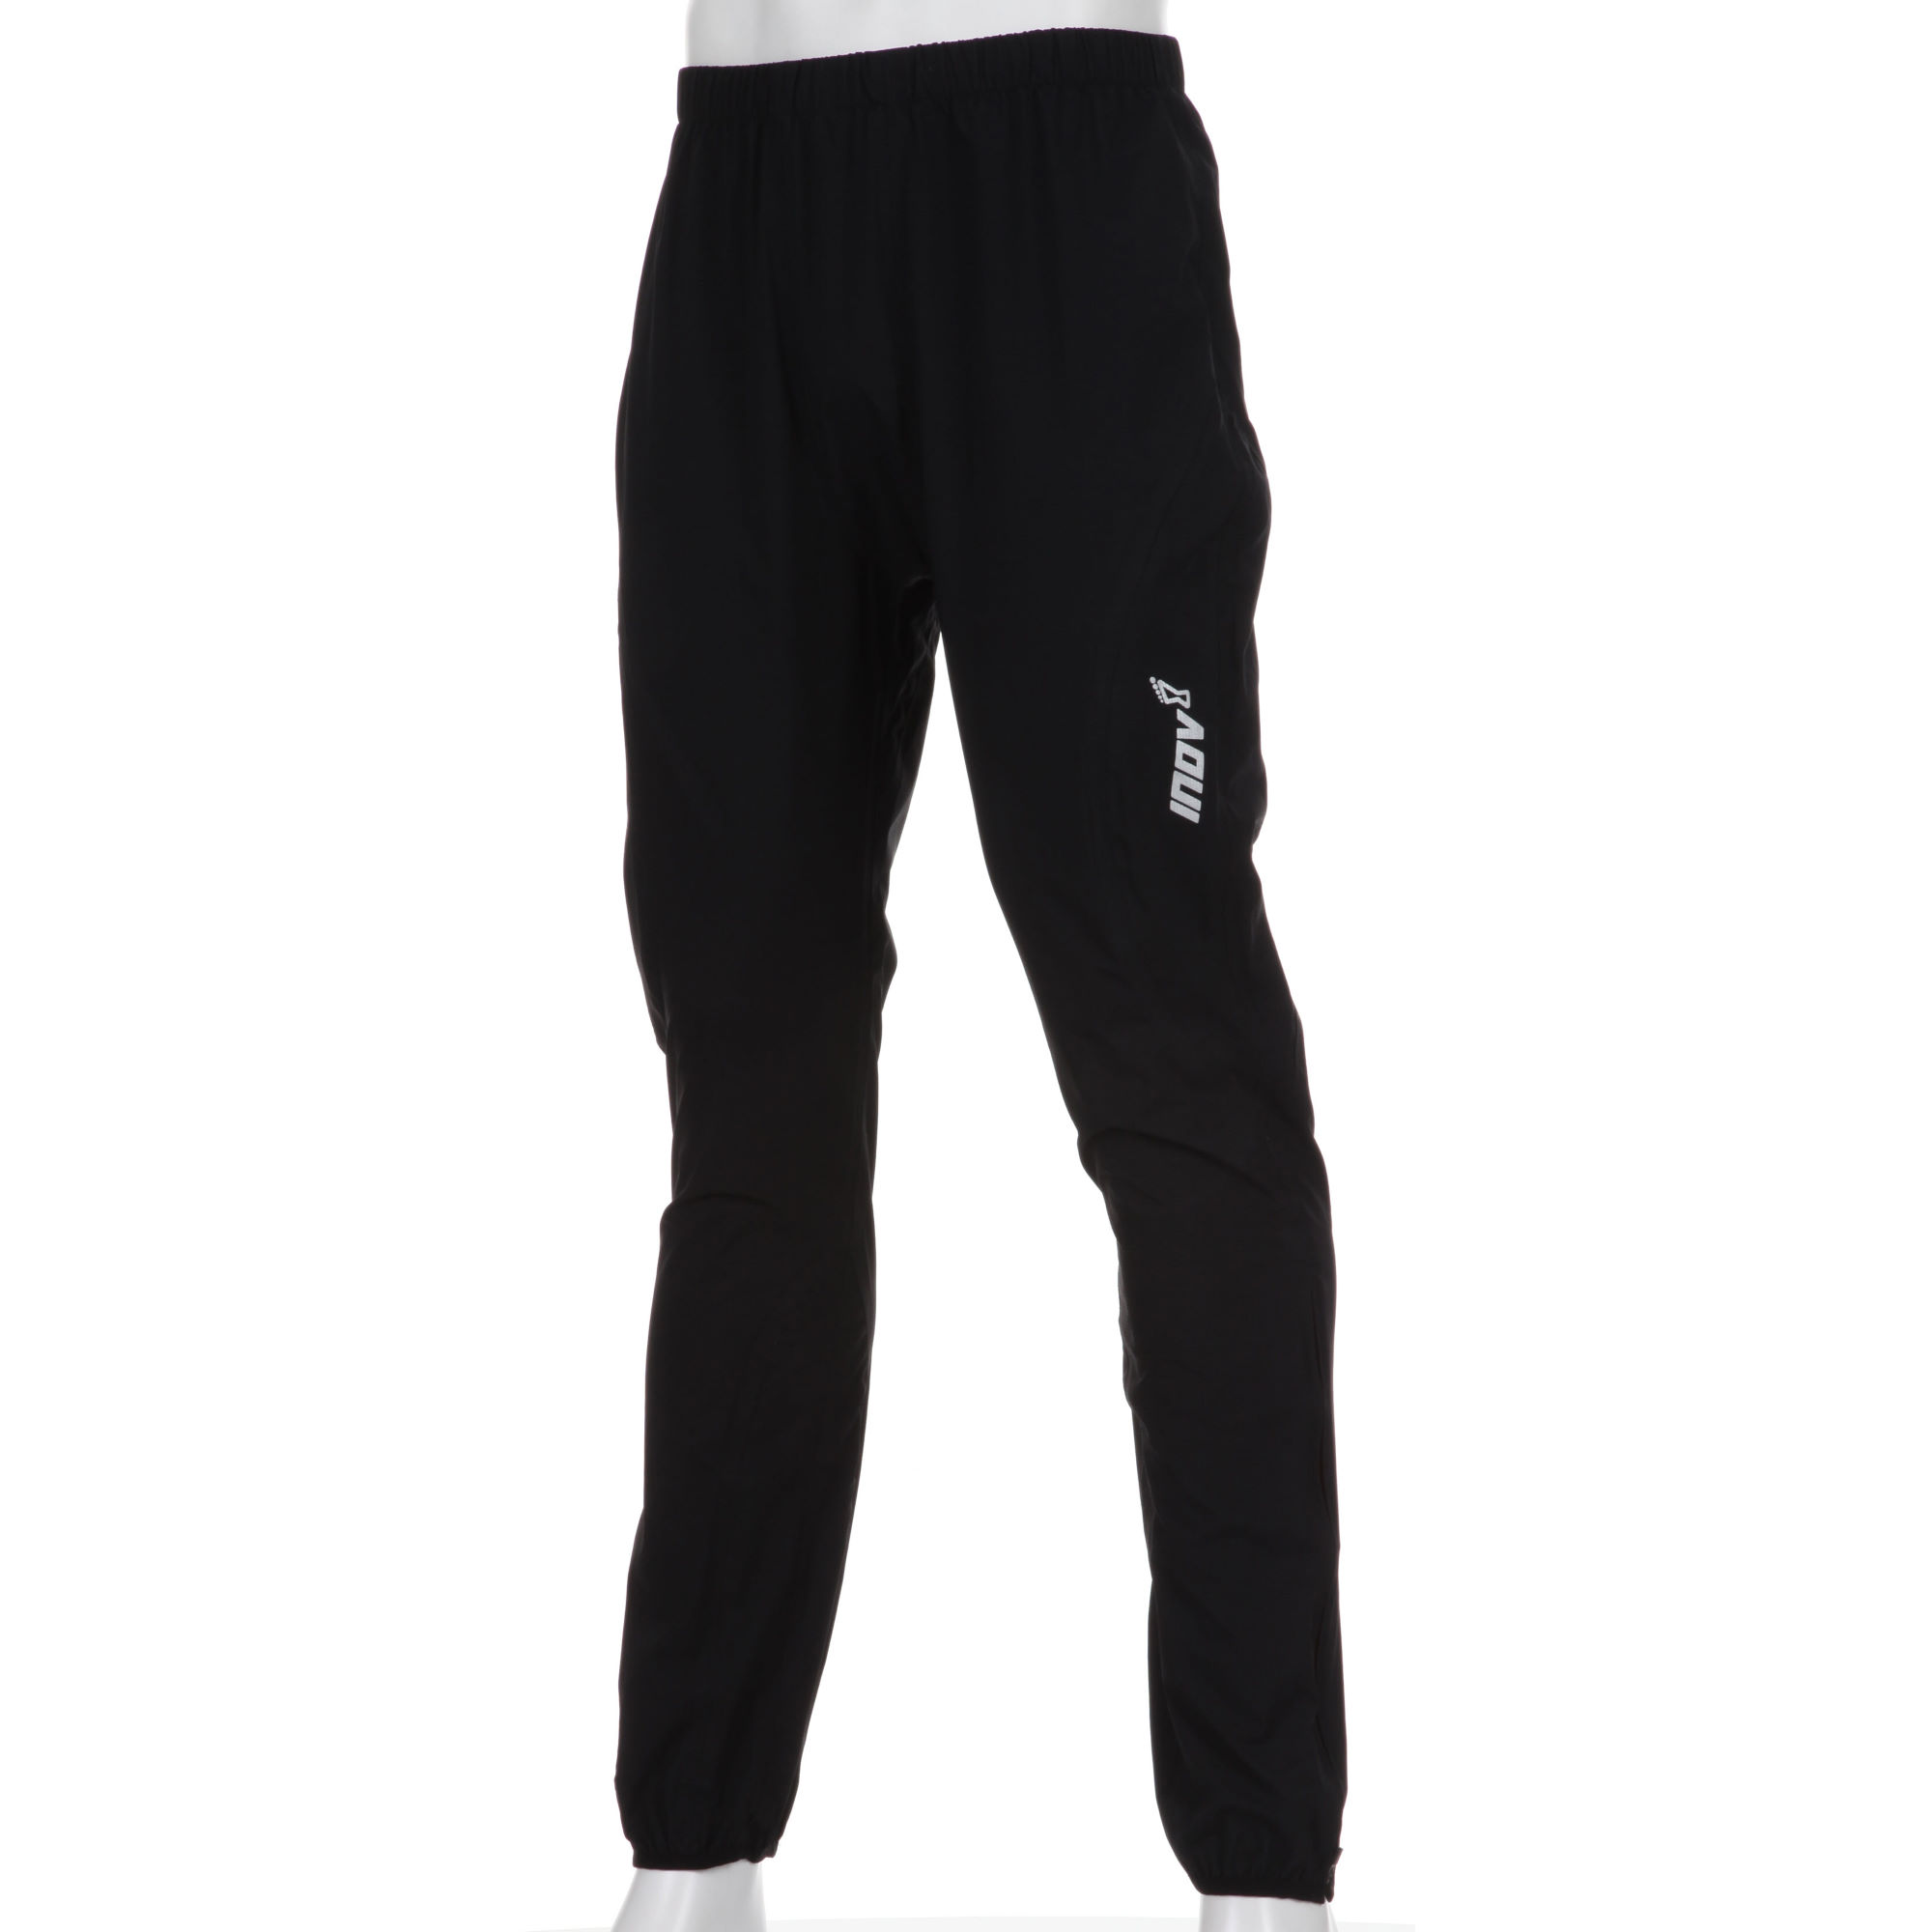 Product Description These men's soccer training pants help you warm up without overheating.